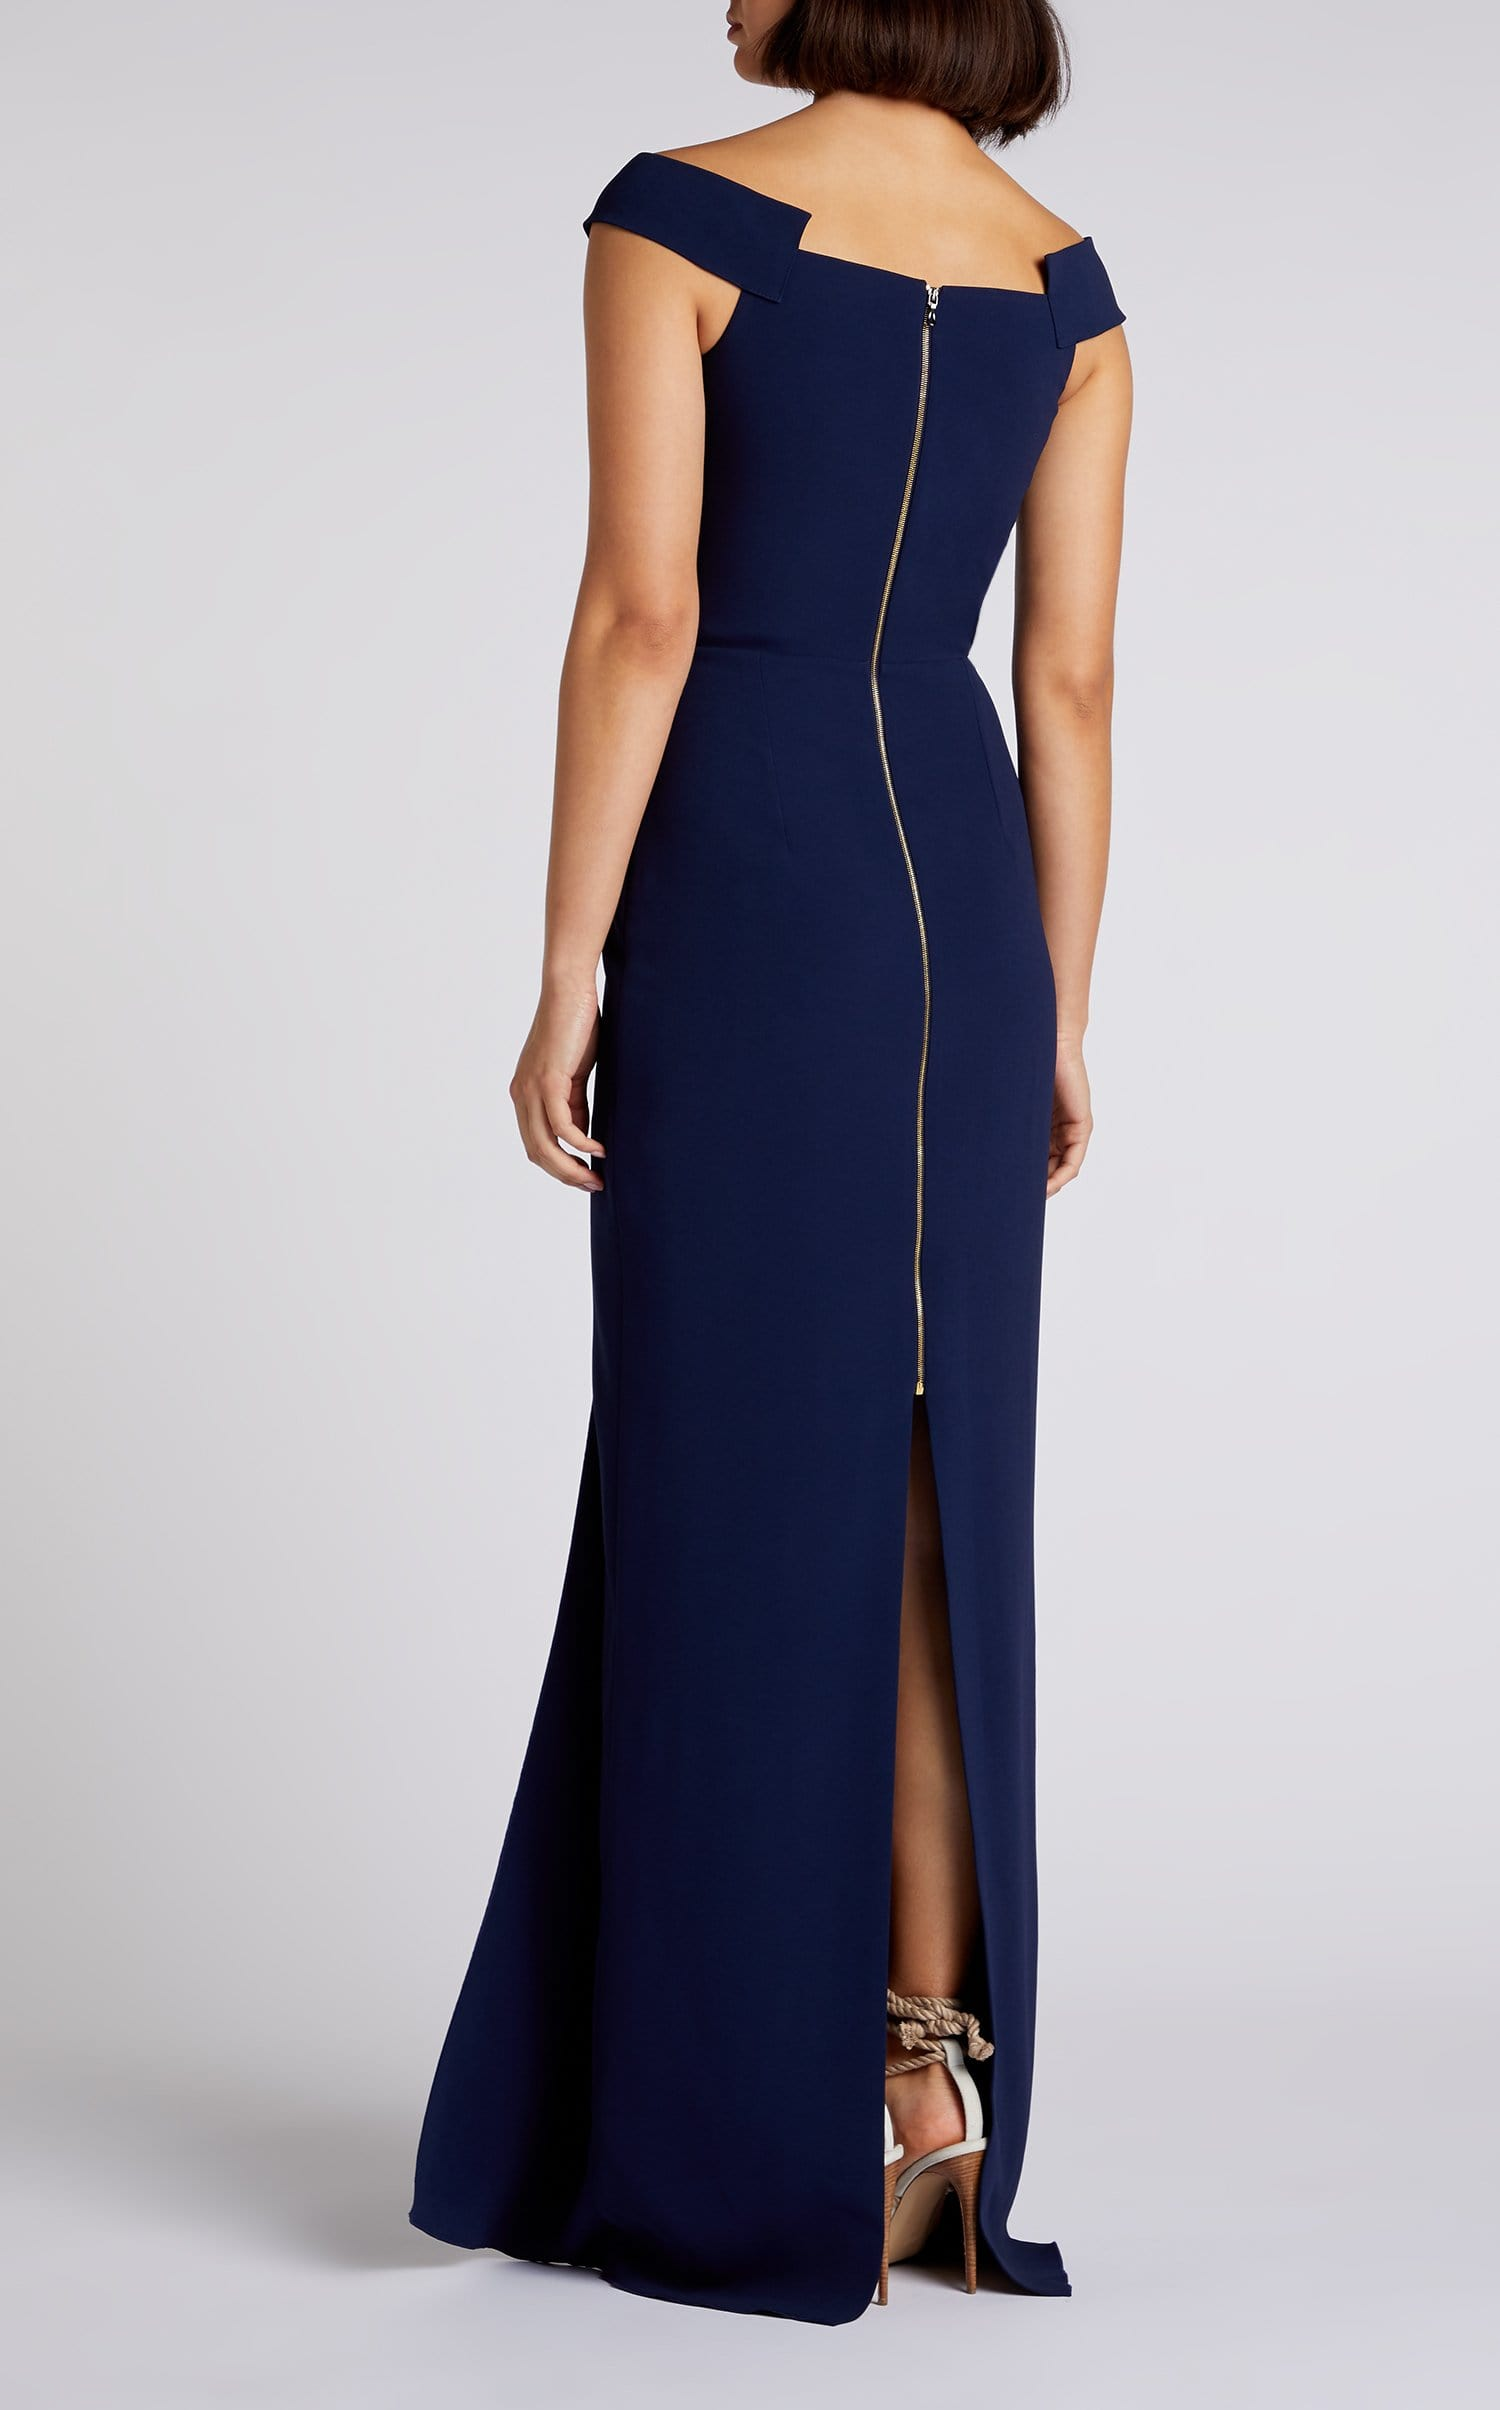 Deauville Gown